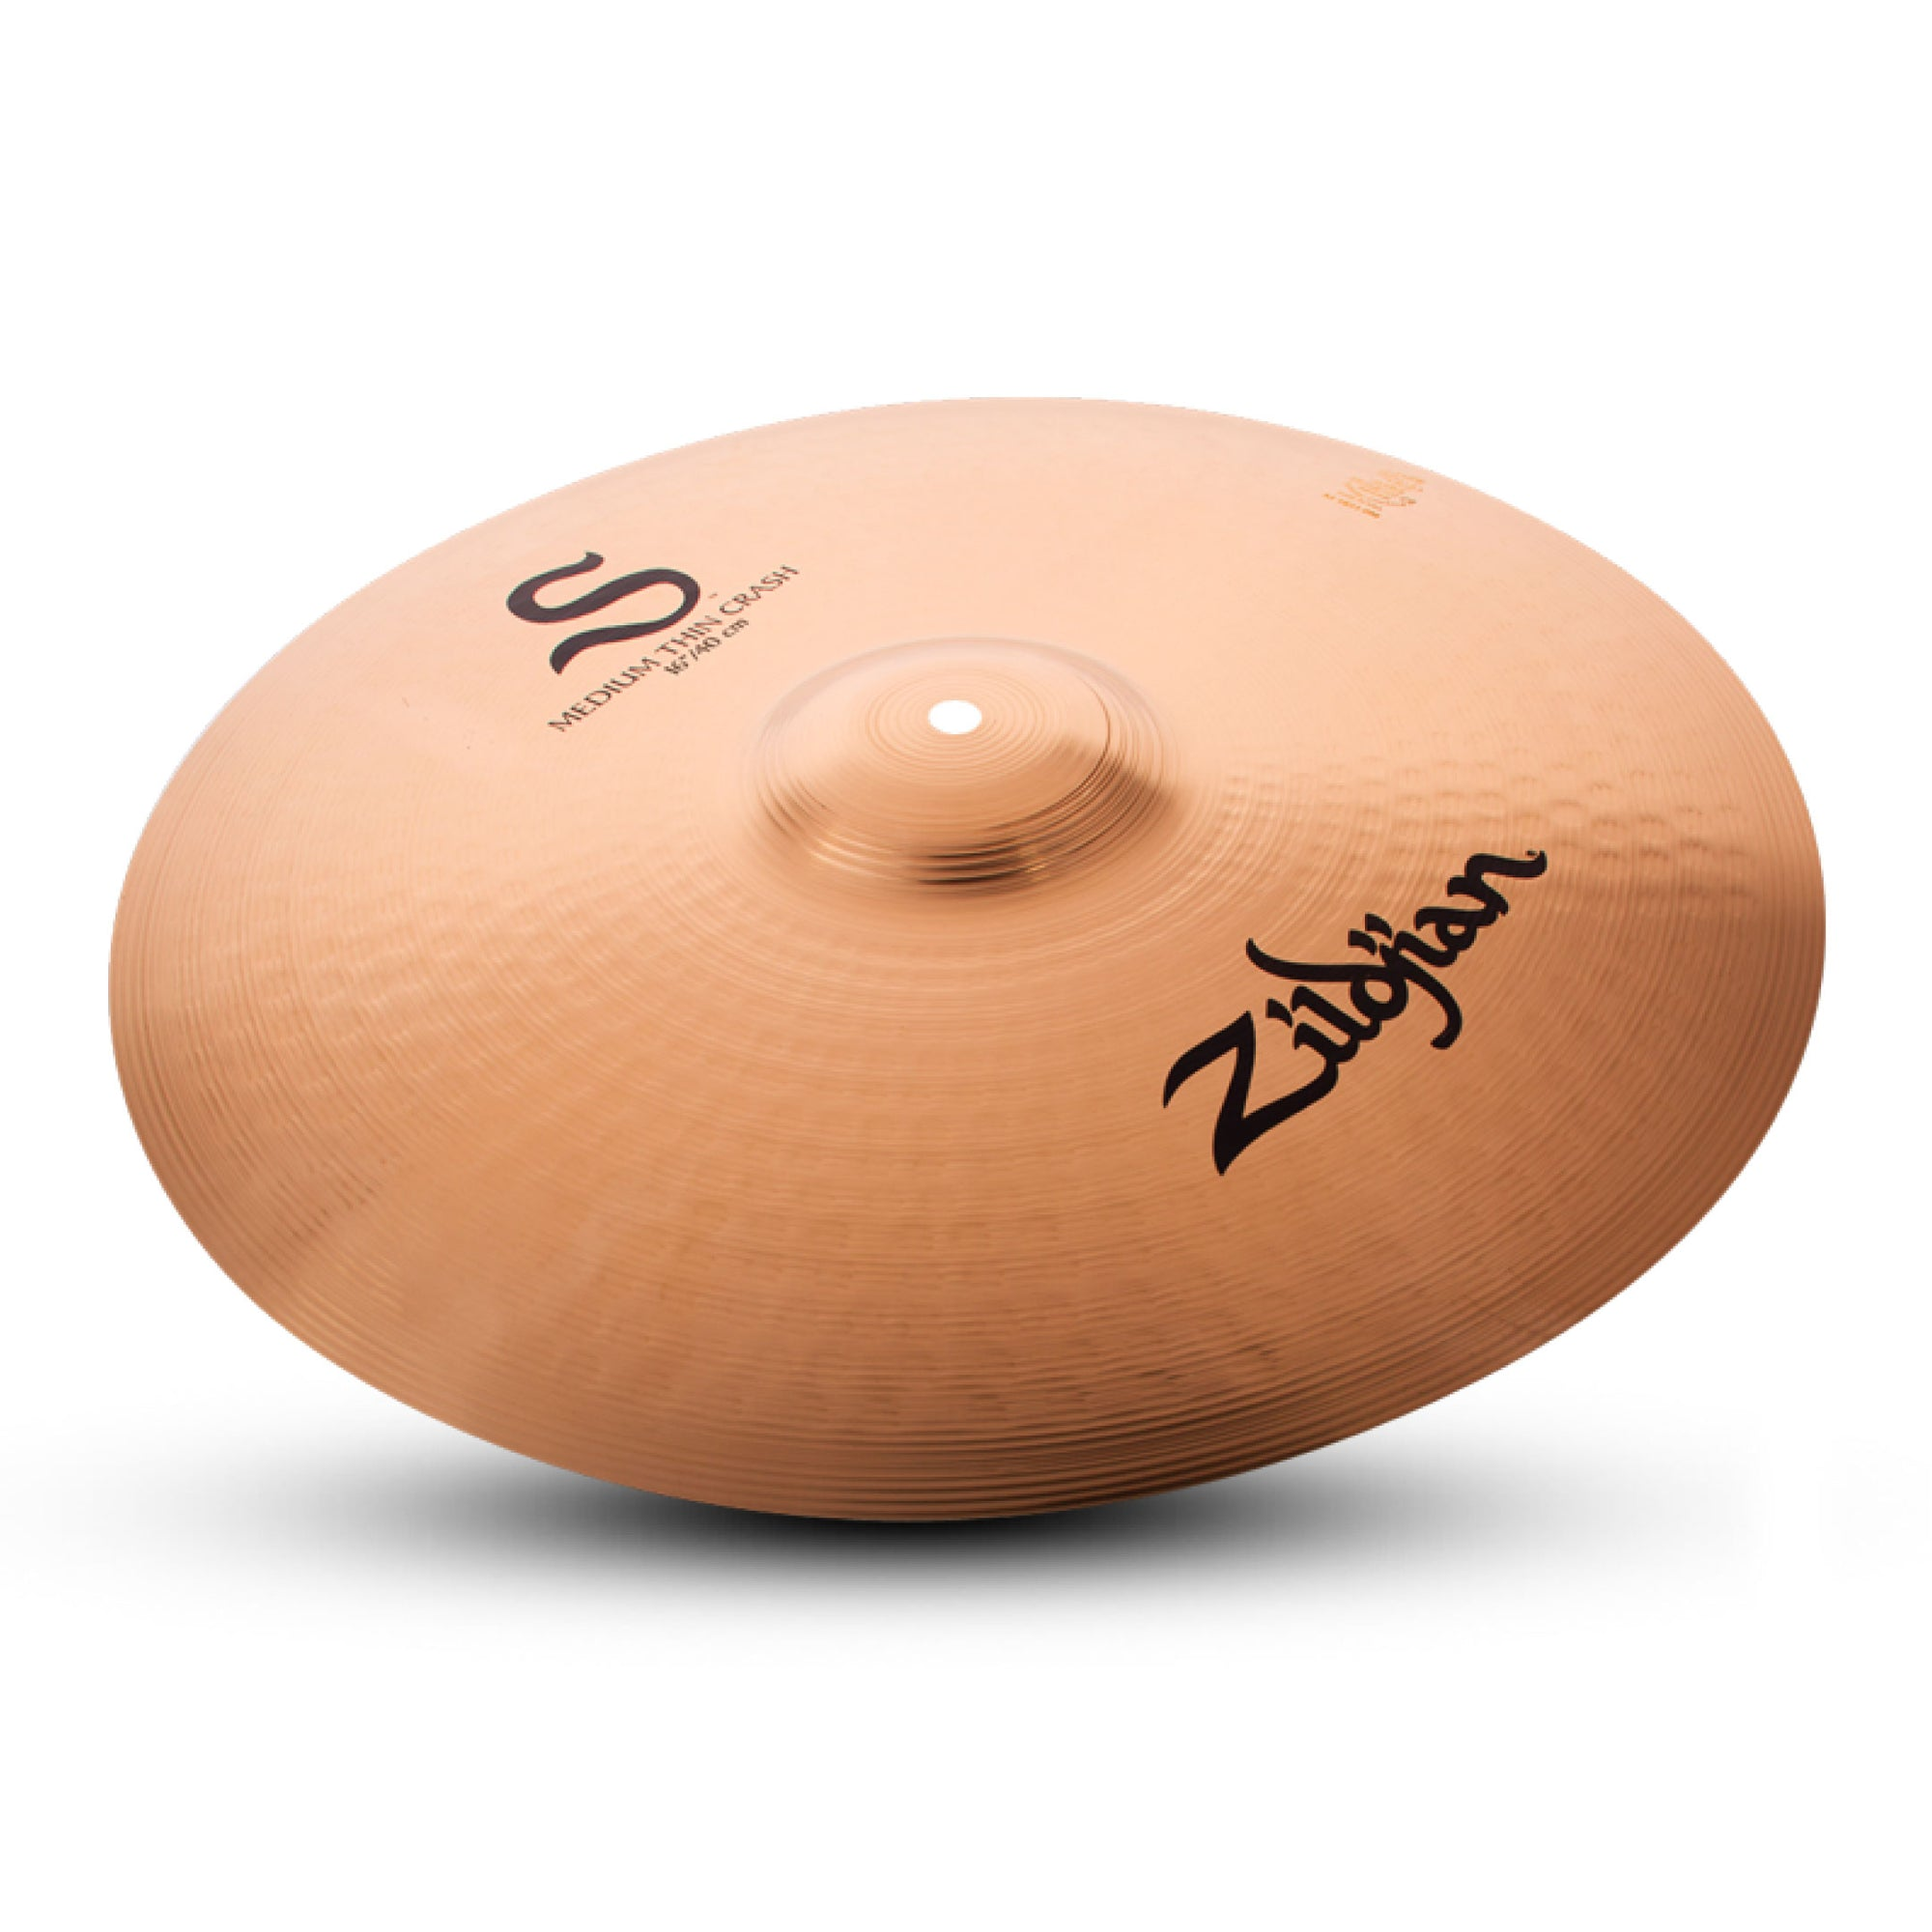 Zildjian Cymbal S Medium Thin Crash - Tarpley Music Company, Inc.